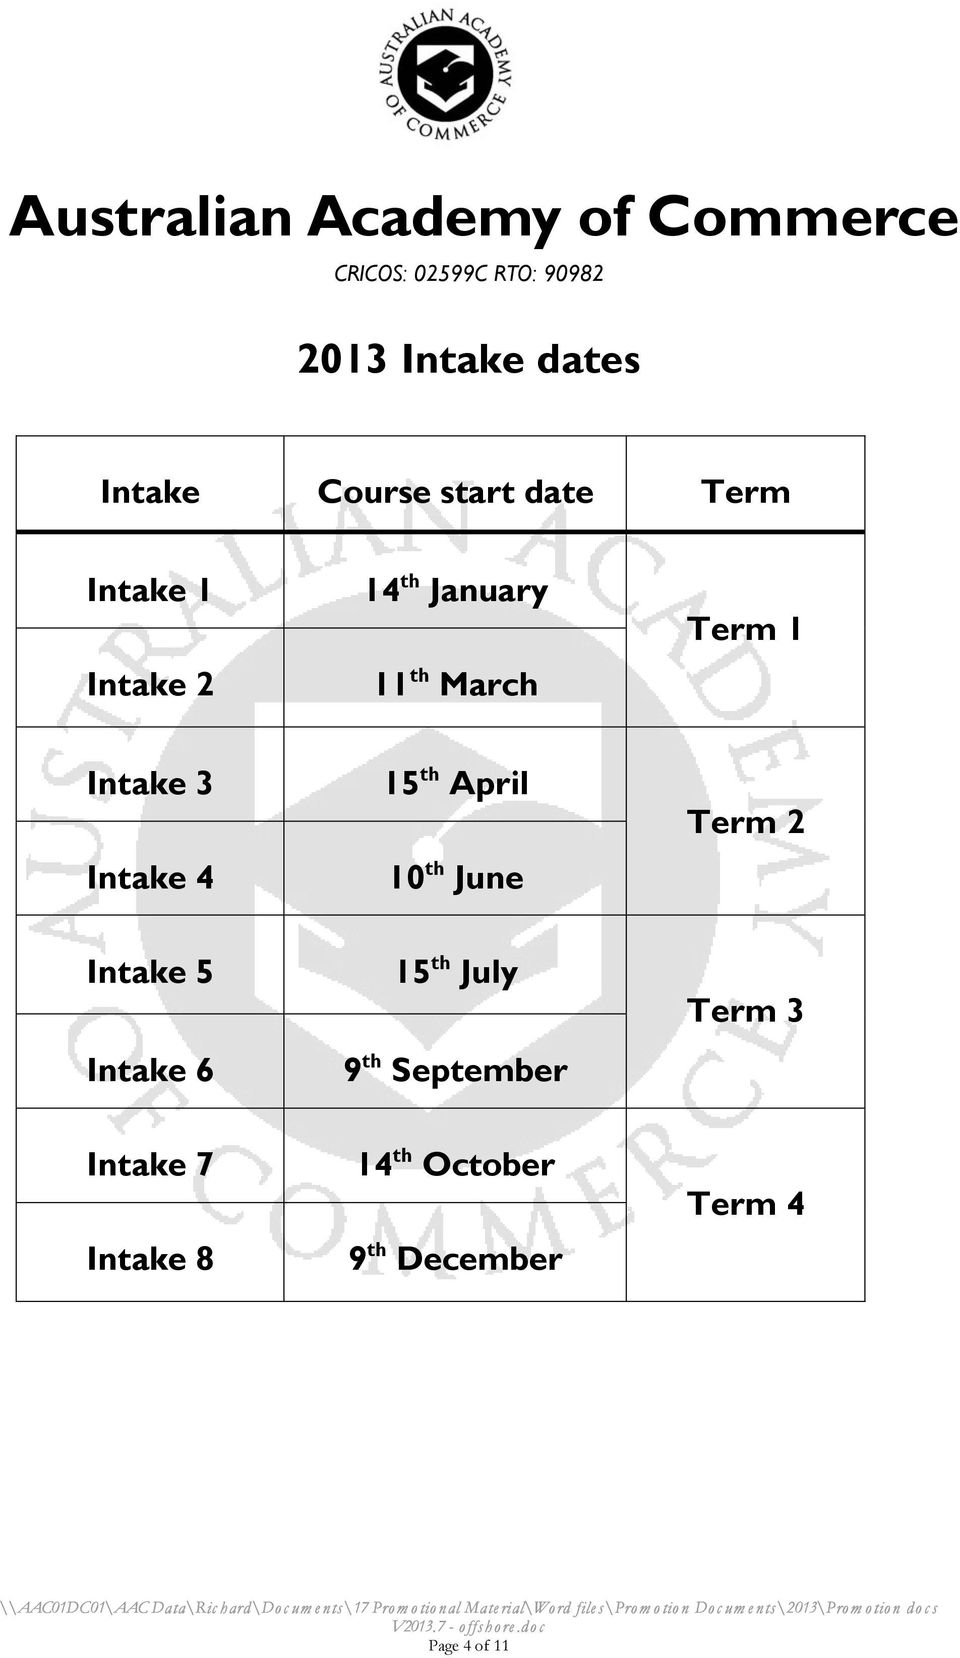 4 15 th April 10 th June Term 2 Intake 5 Intake 6 15 th July 9 th